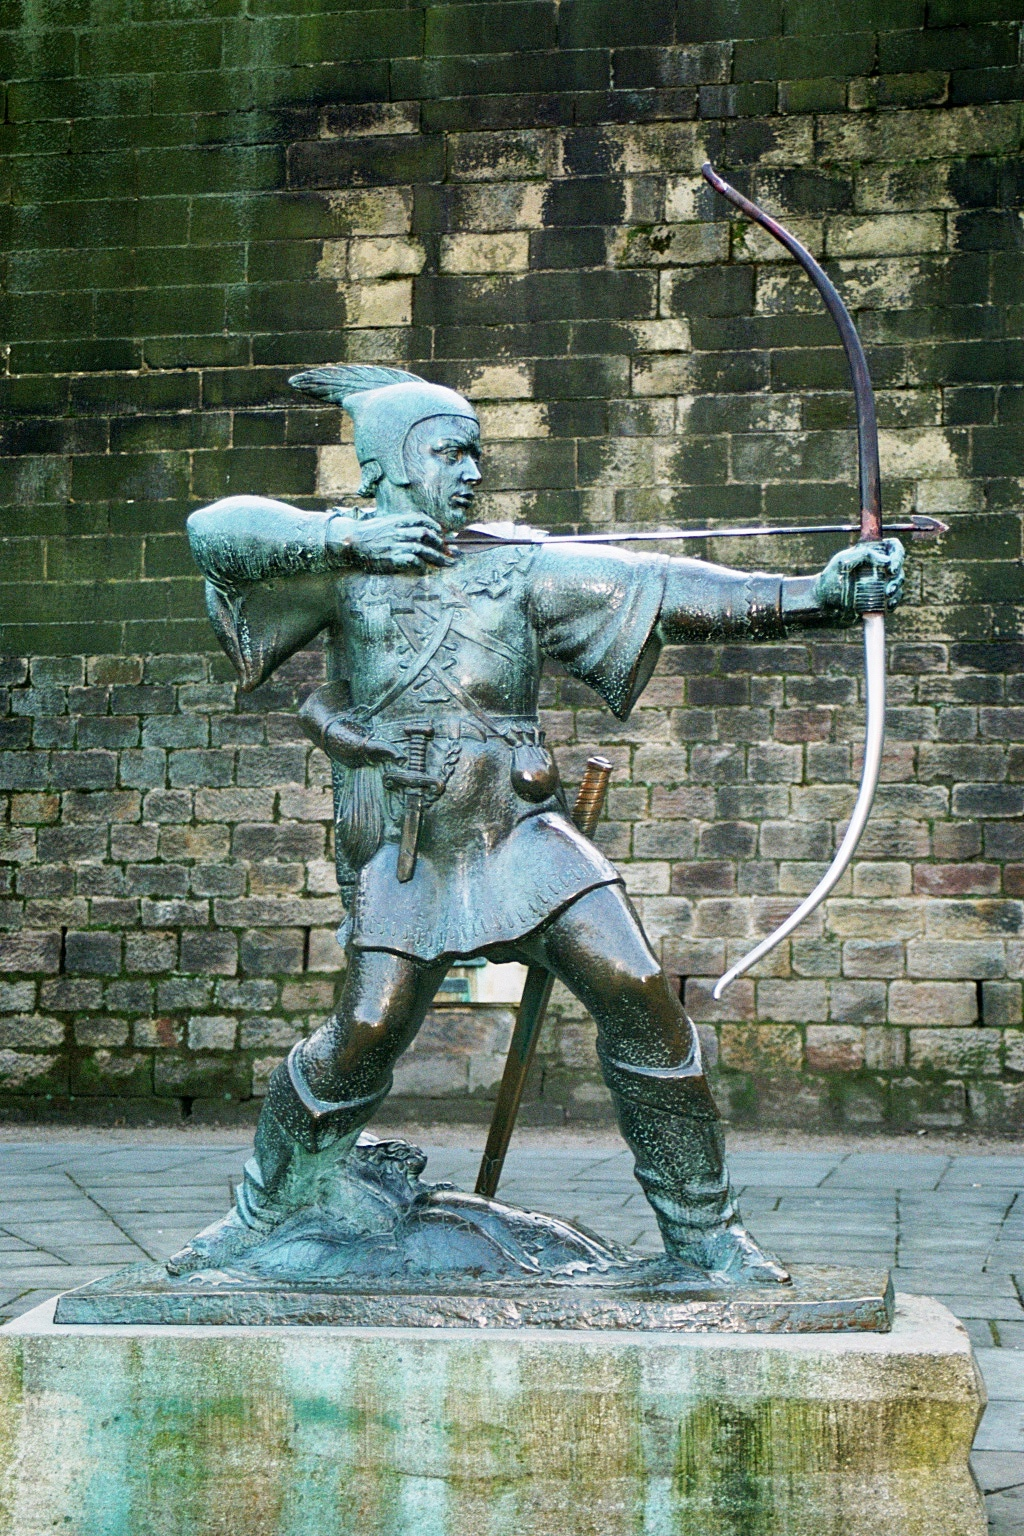 http://upload.wikimedia.org/wikipedia/commons/a/a9/Robin_Hood_Memorial.jpg